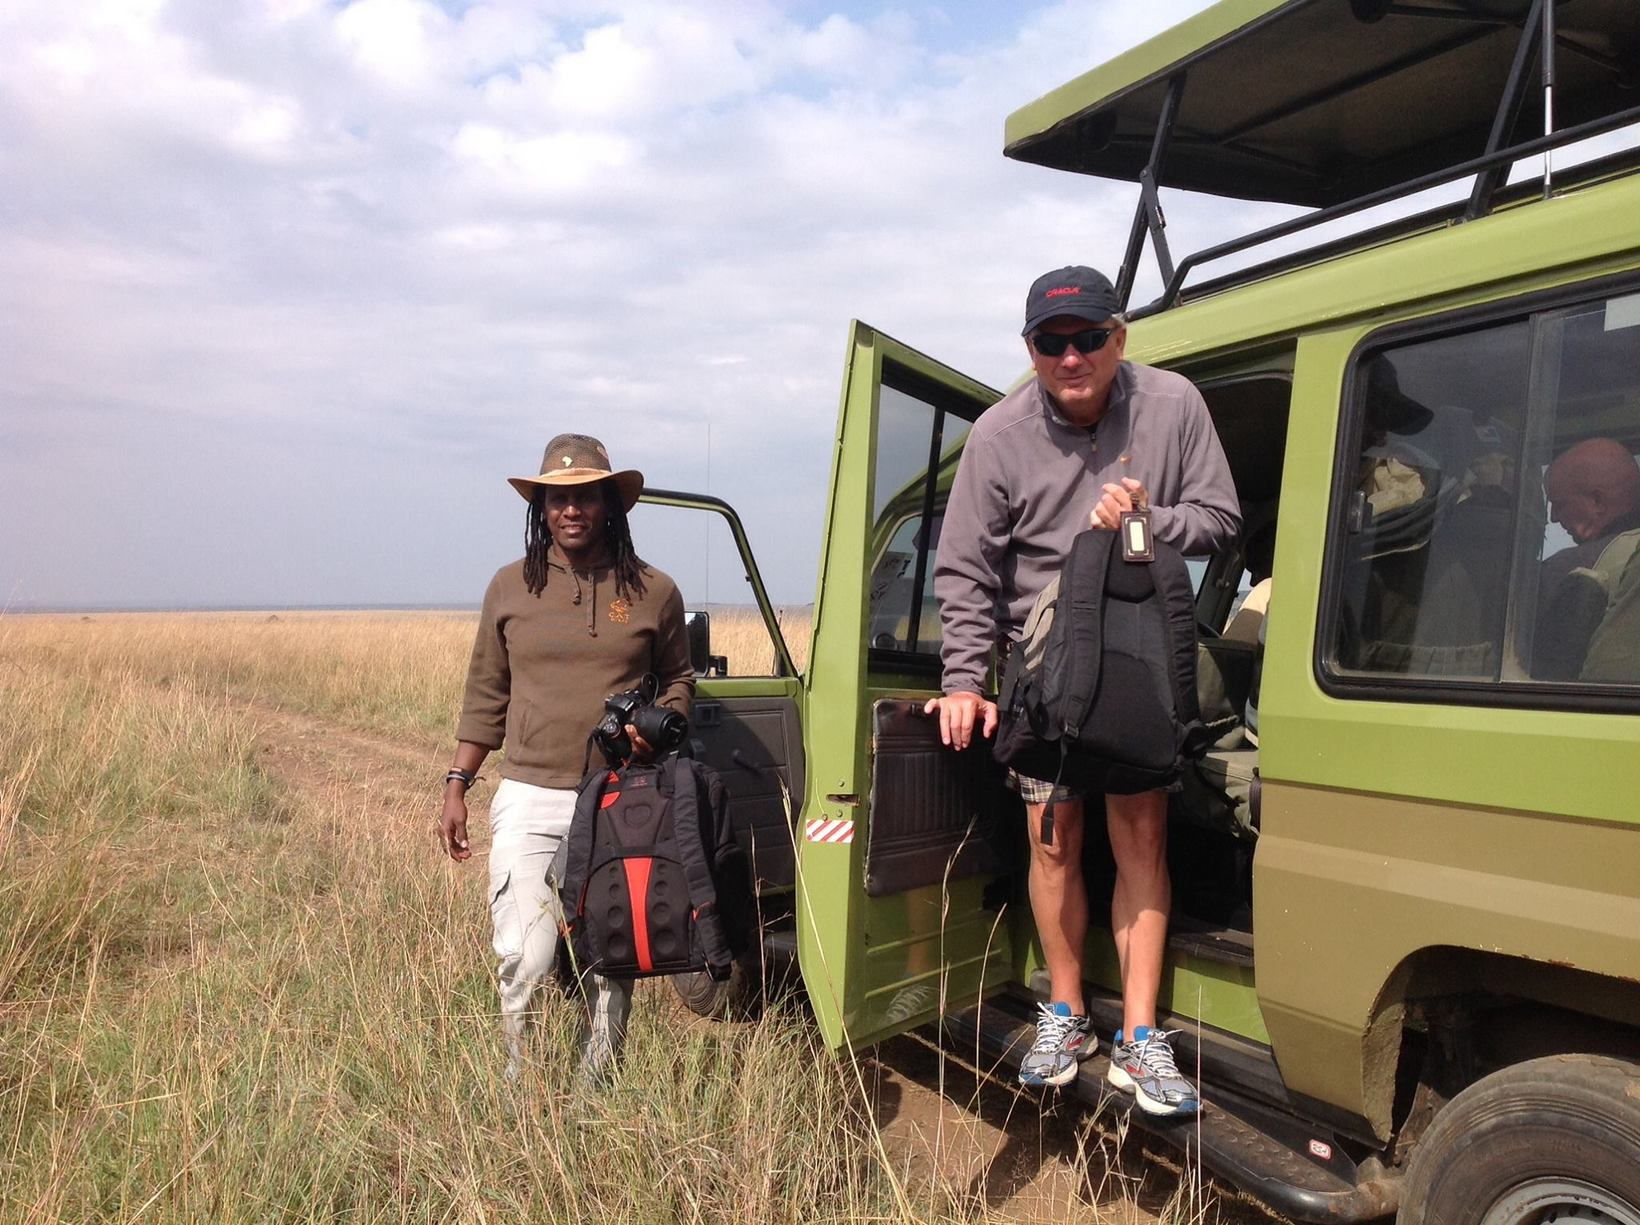 If you would like to remind yourself what a real safari should feel like, try us, we'll help you Experience it!